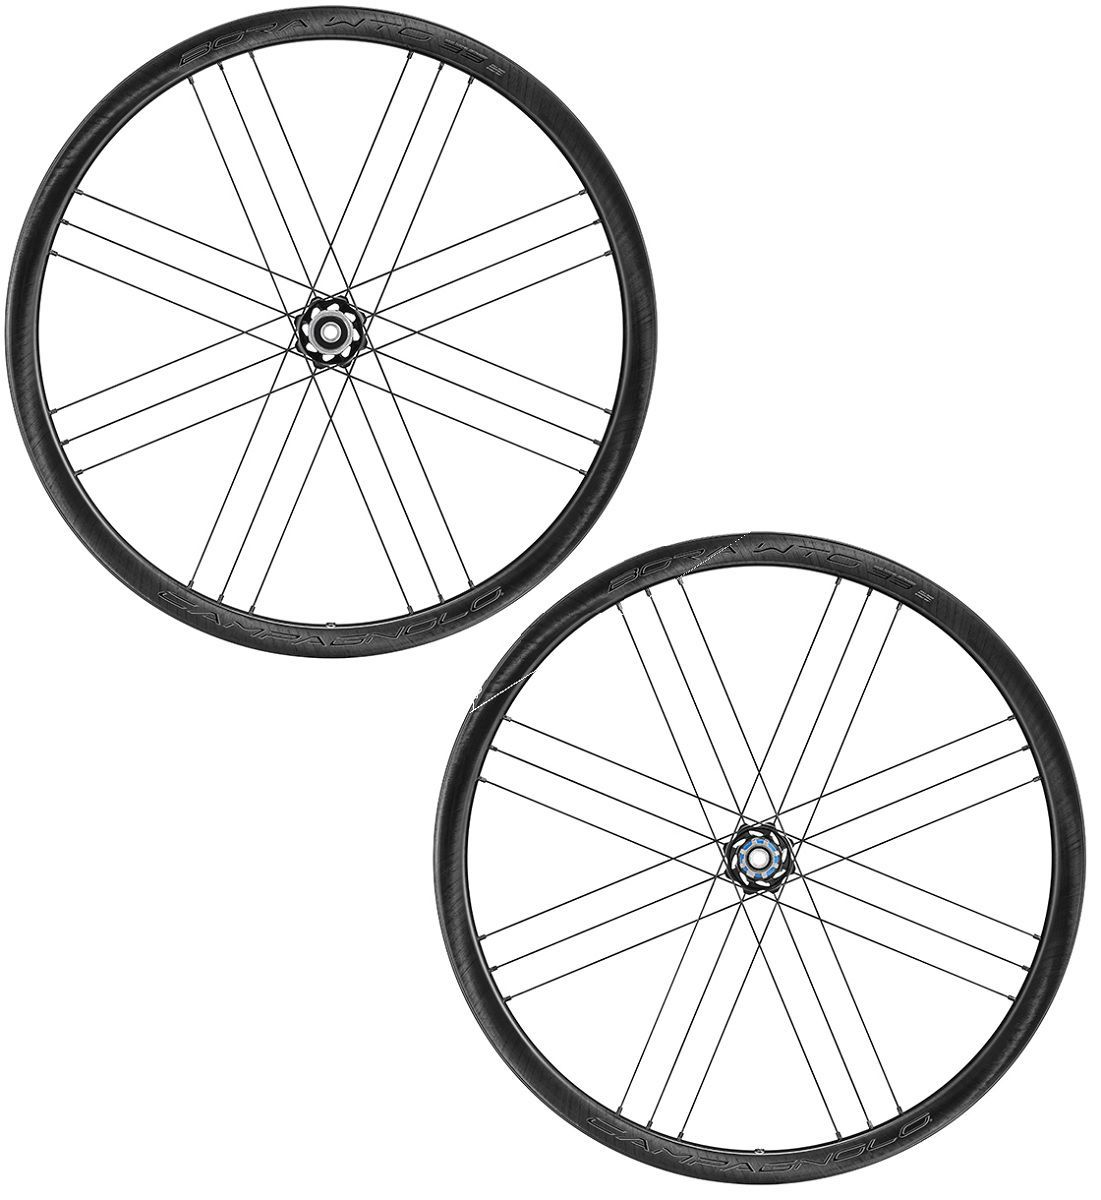 Roues Campagnolo Bora WTO 33 Carbone Disc 2WF - Réf. WH20-BOWTODFR33